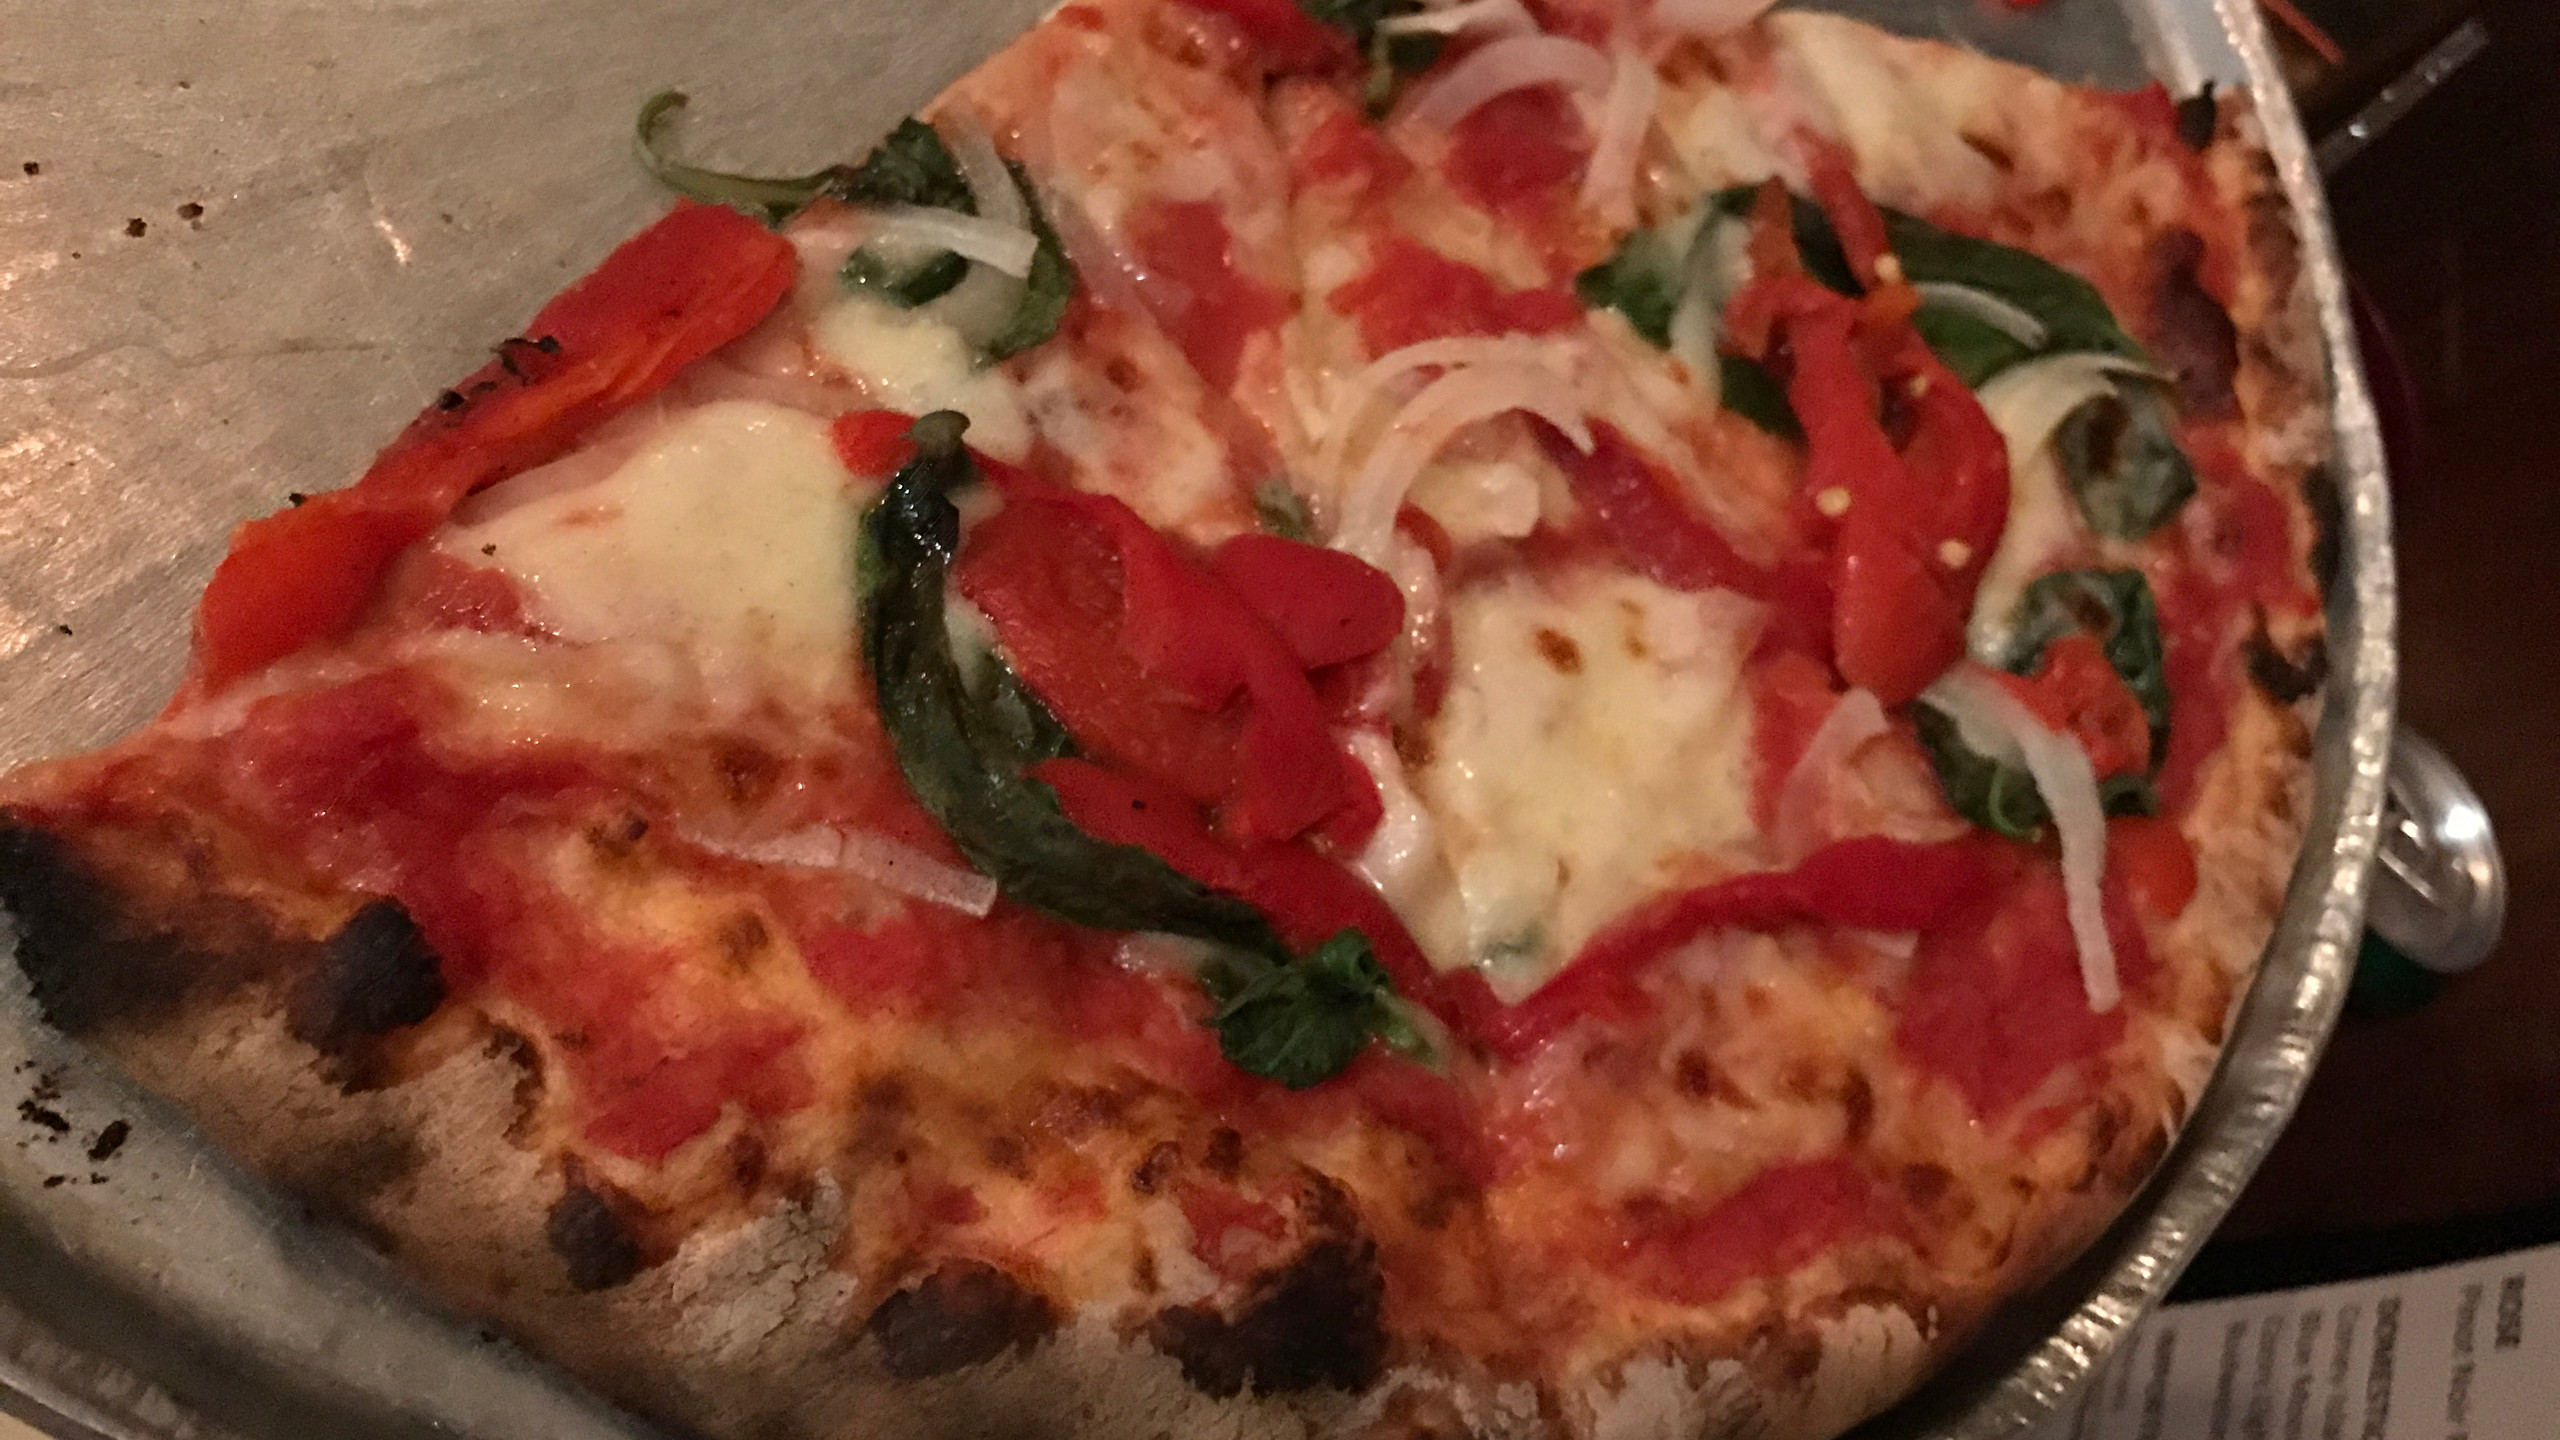 grated mozzarella, tomato sauce, roasted peppers, basil, portobello substituted with onions